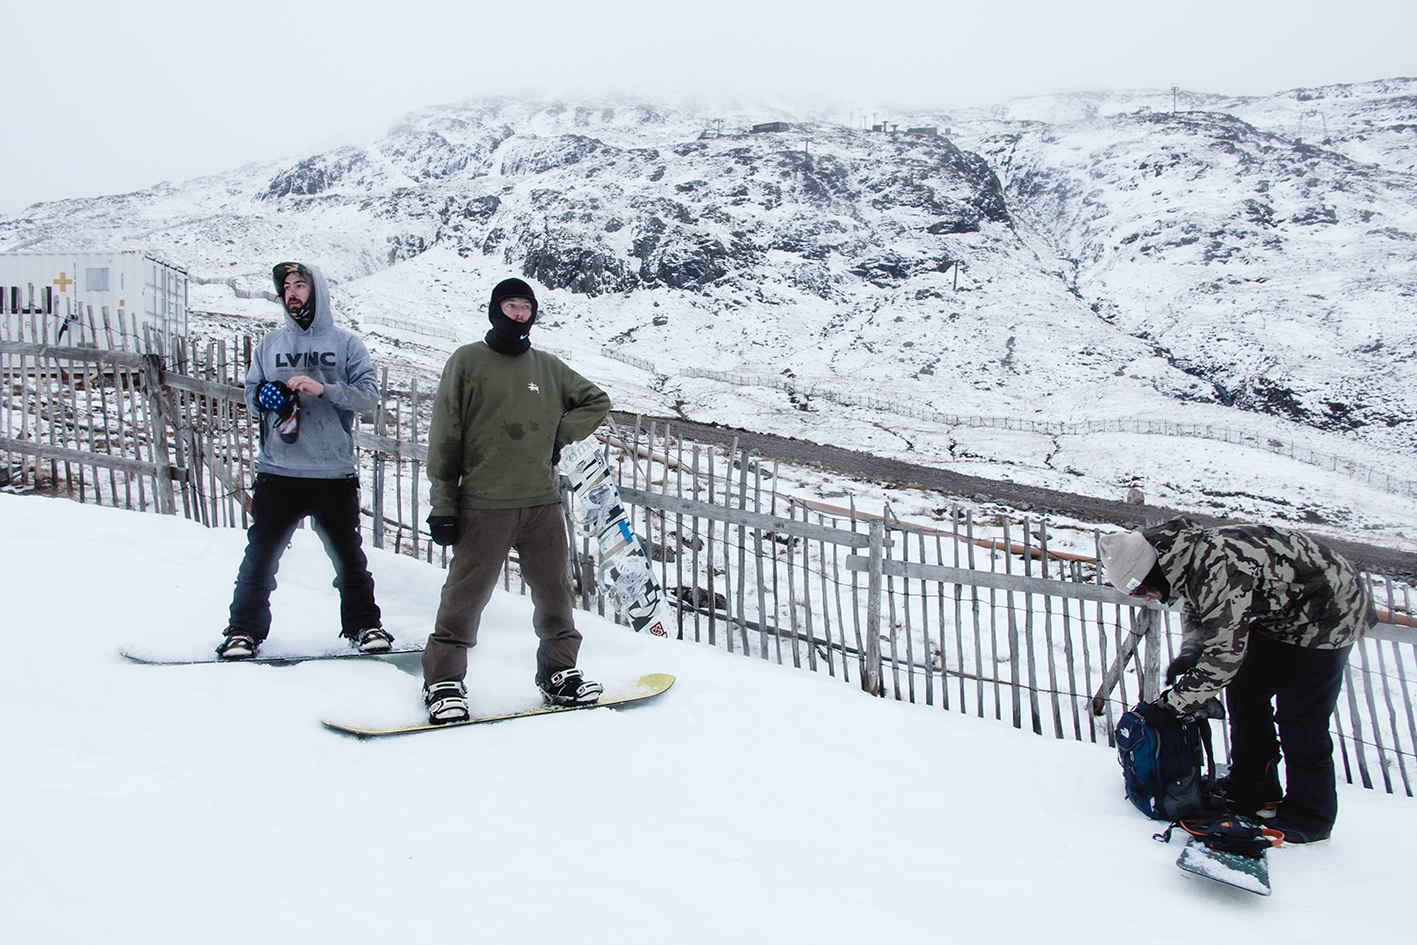 Opening day at Glencoe – The Scottish winter has officially started!